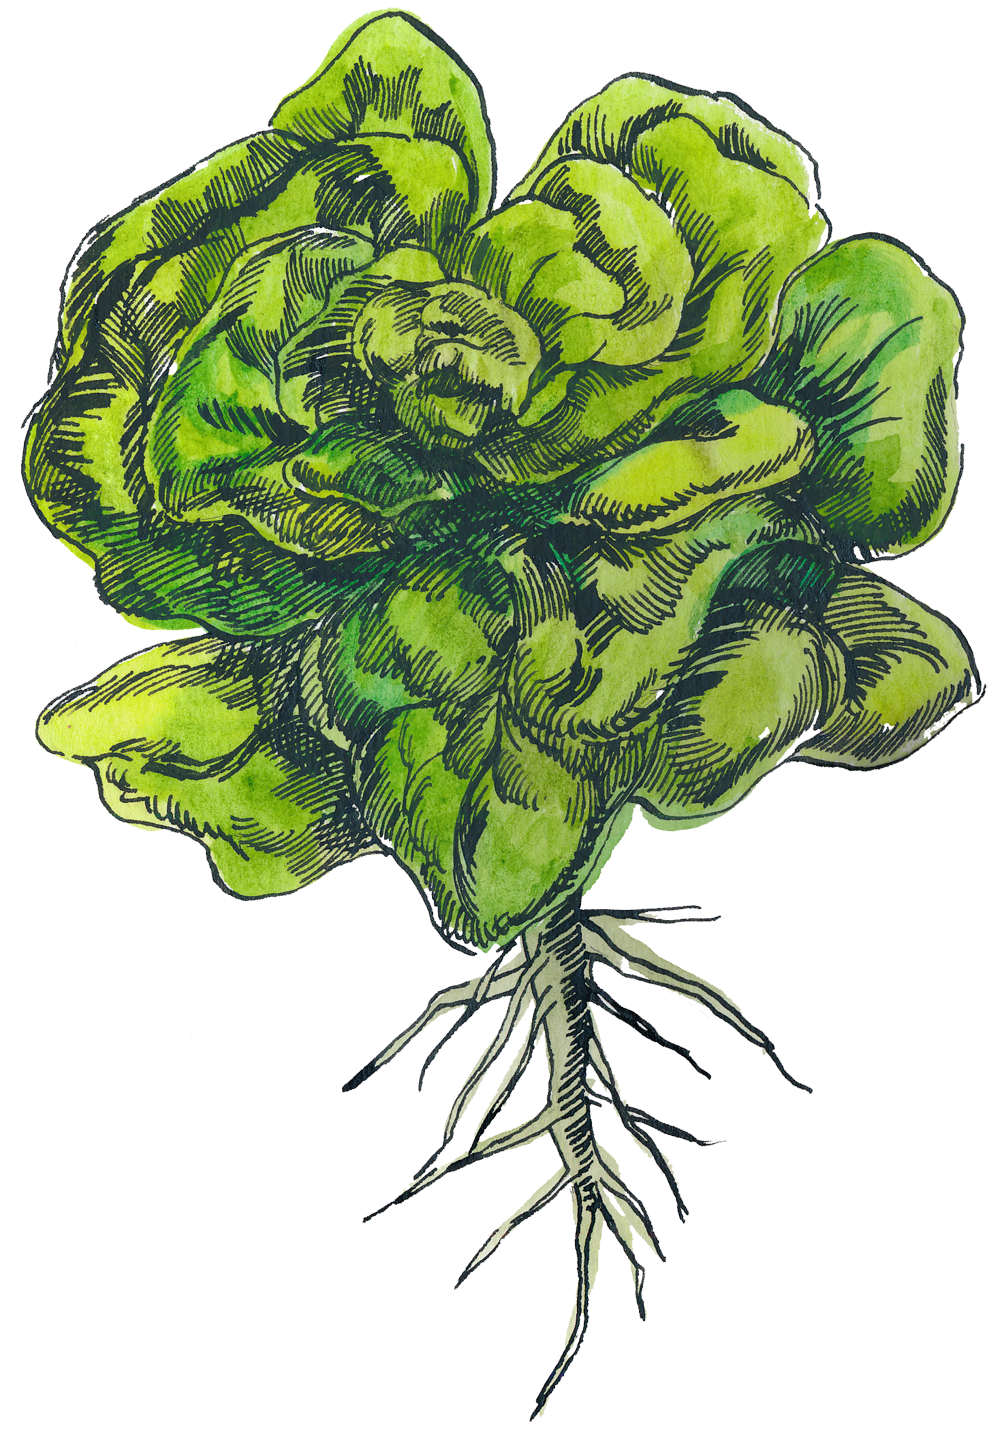 Montana harvest of the. Leaf clipart leafy greens